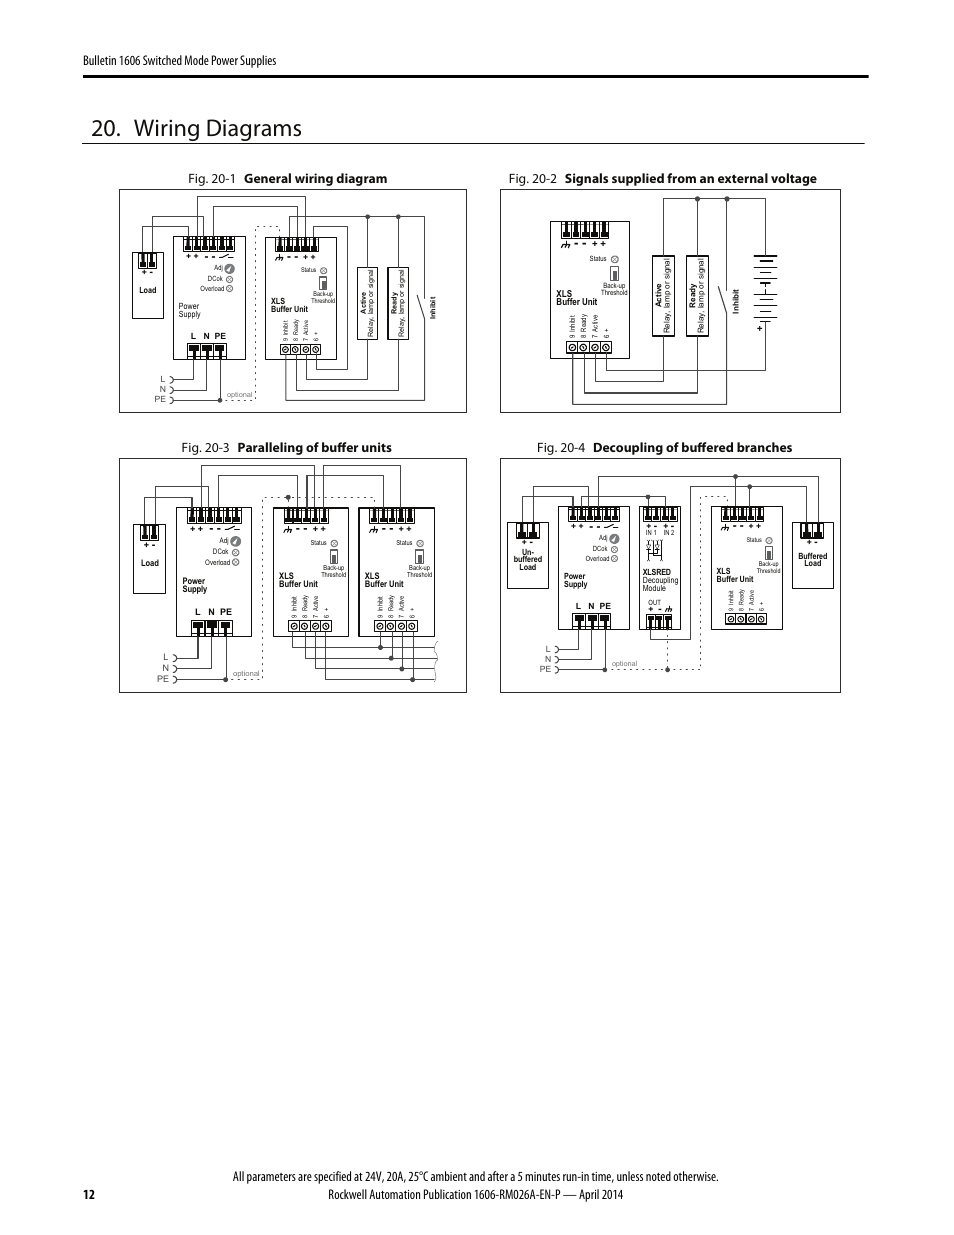 Wiring diagrams, Fig. 20-1 general wiring diagram, Fig. 20-3 paralleling of  buffer units | Rockwell Automation 1606-XLSBUFFER24 Power Supply Reference  Manual User Manual | Page 12 / 14 | Original modeManuals Directory